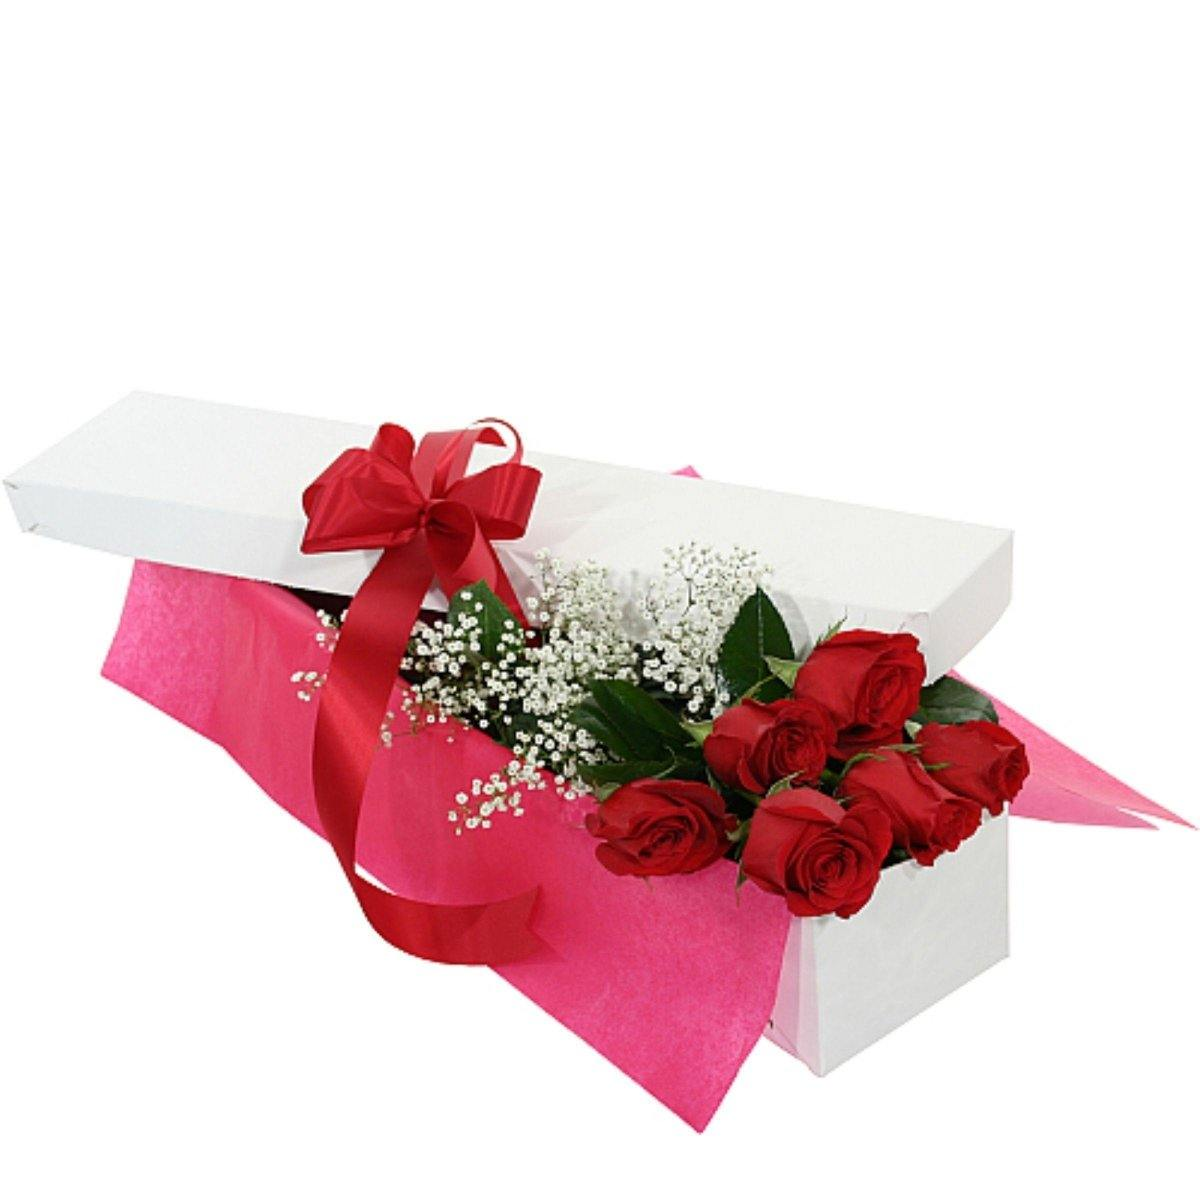 Six Red Roses in a Gift Box - Shalimar Flower Shop